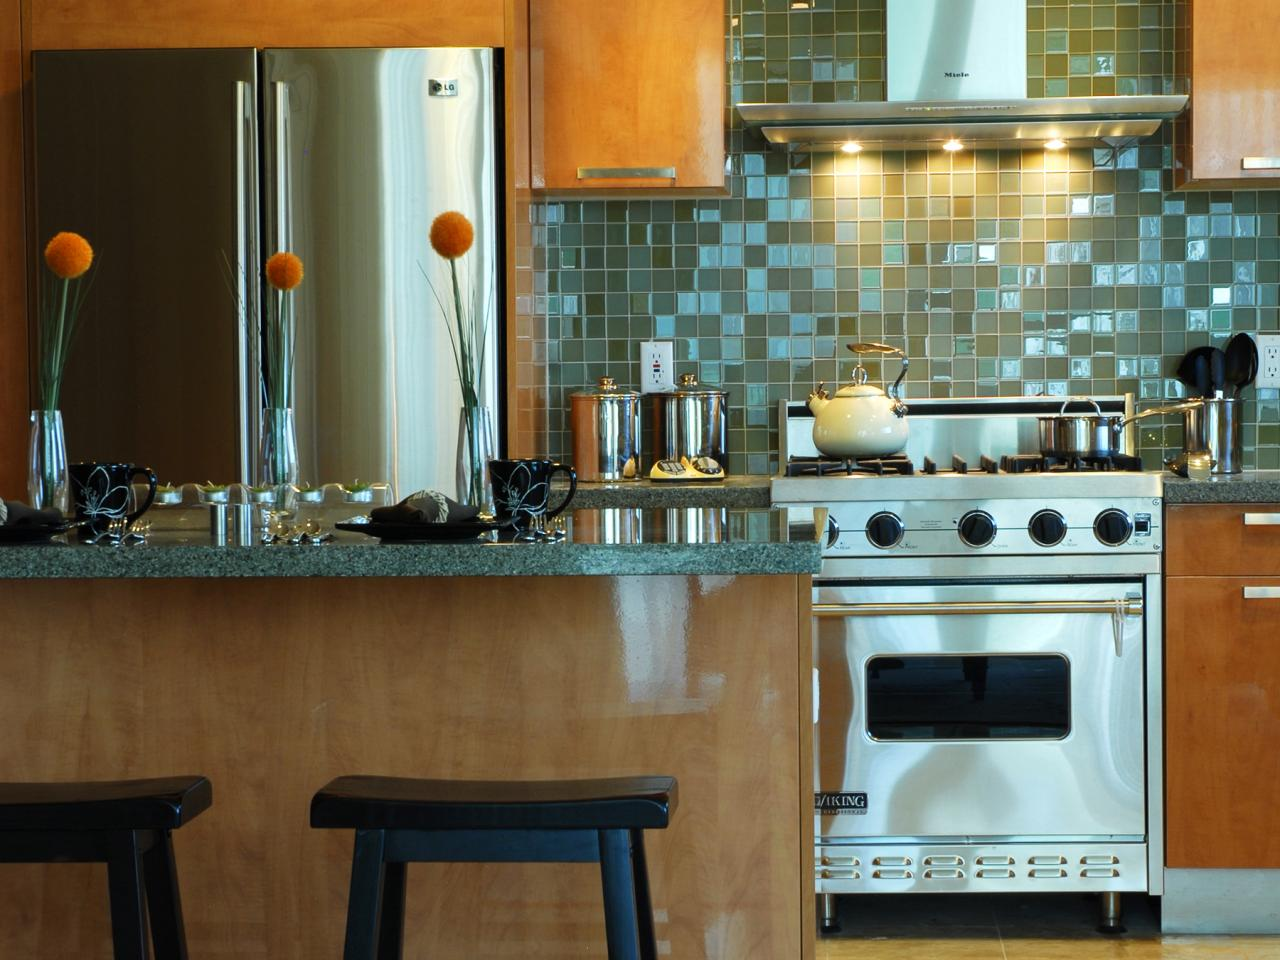 ... Kitchen Decor Theme Concept. 1400941996345